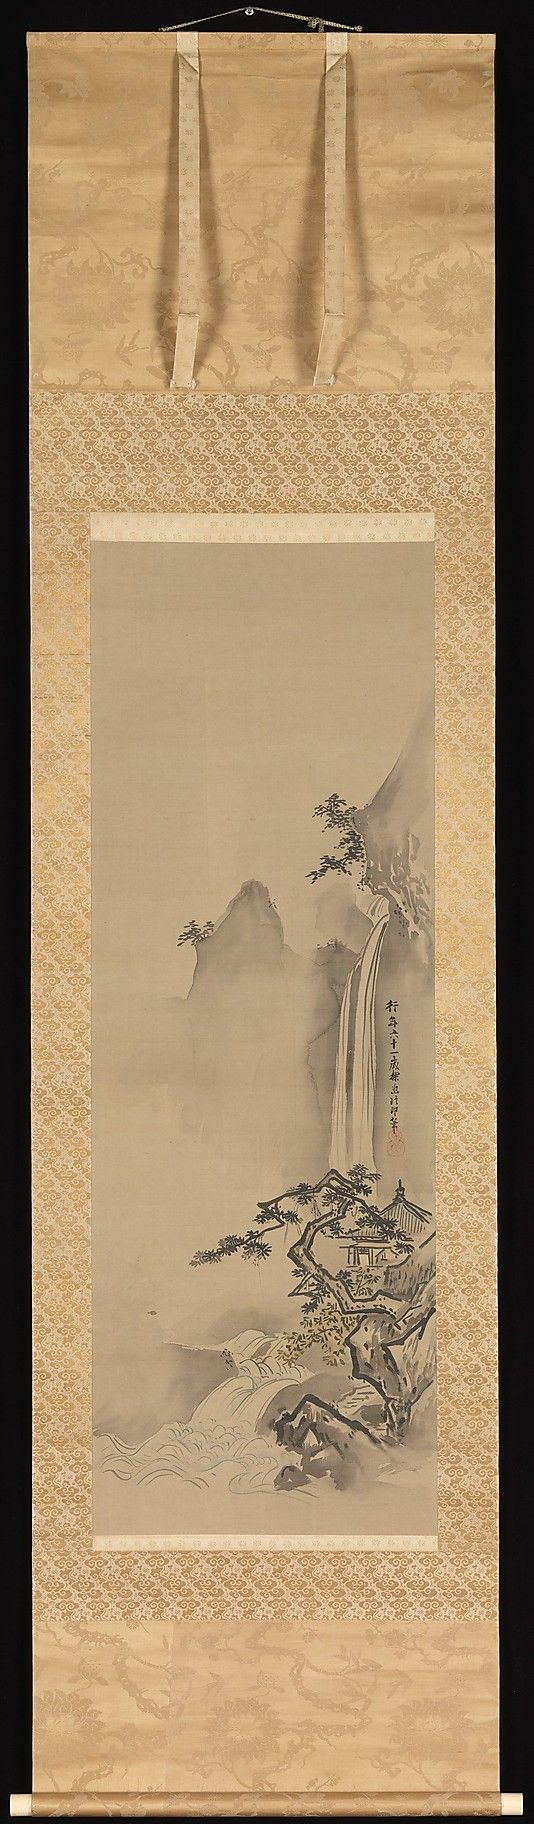 Kano Tan'yū (Japanese, 1602–1674). Summer Landscape, 1662. Japan. Edo period (1615–1868). The Metropolitan Museum of Art, New York. Charles Stewart Smith Collection, Gift of Mrs. Charles Stewart Smith, Charles Stewart Smith Jr., and Howard Caswell Smith, in memory of Charles Stewart Smith, 1914 (14.76.28)